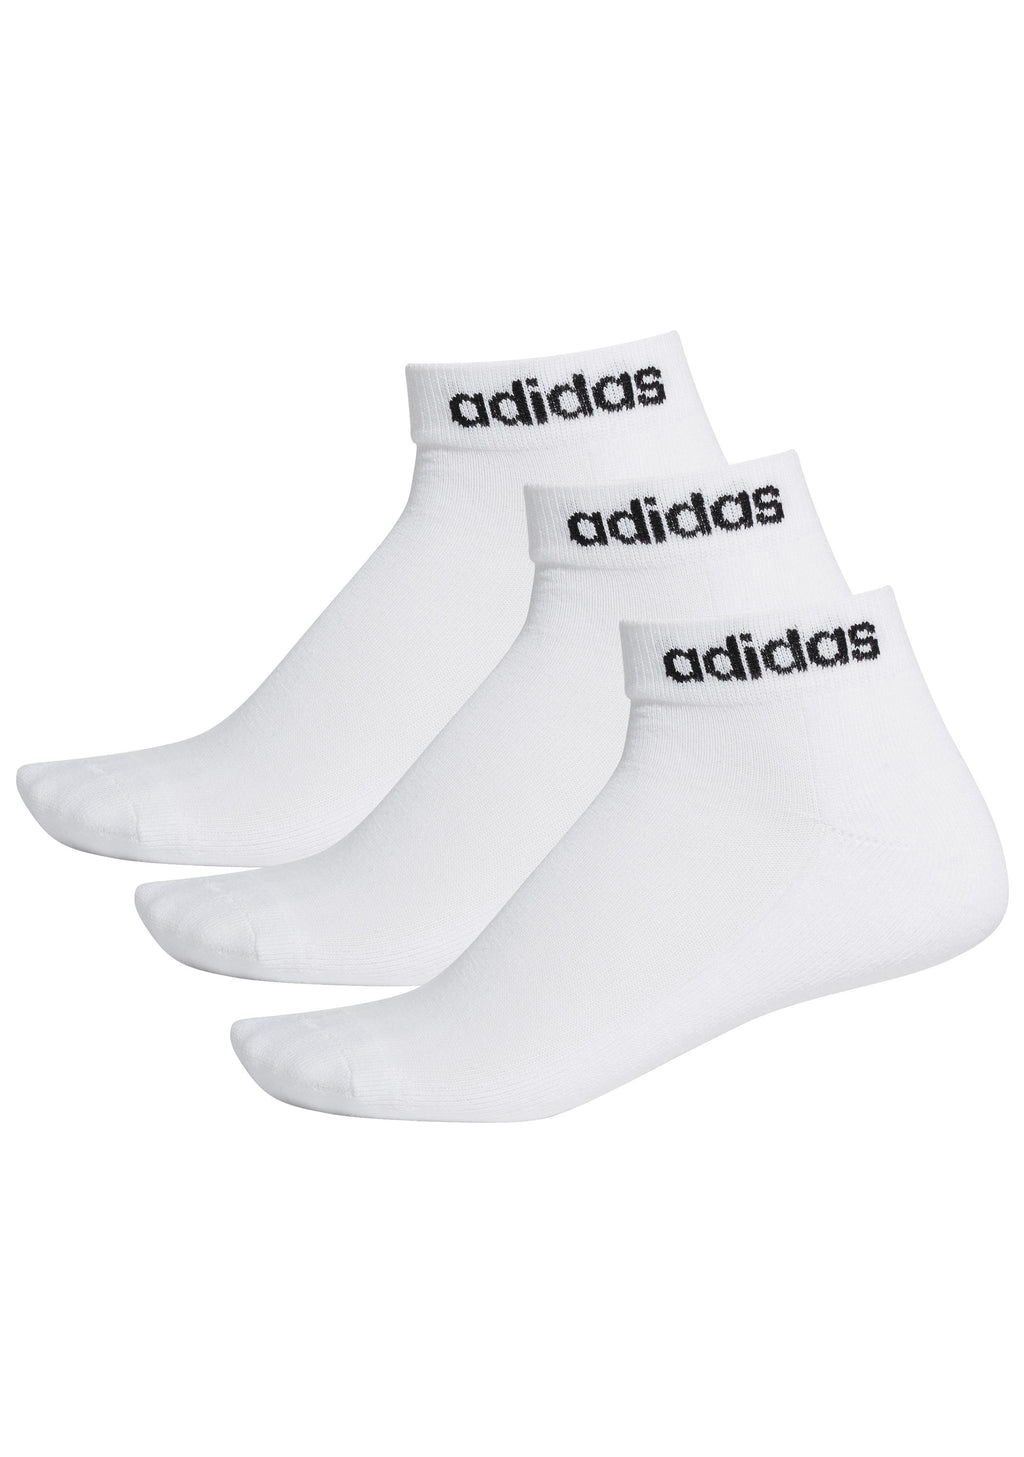 ADIDAS PERFORMANCE HC ANKLE SOCKS 3 PACK